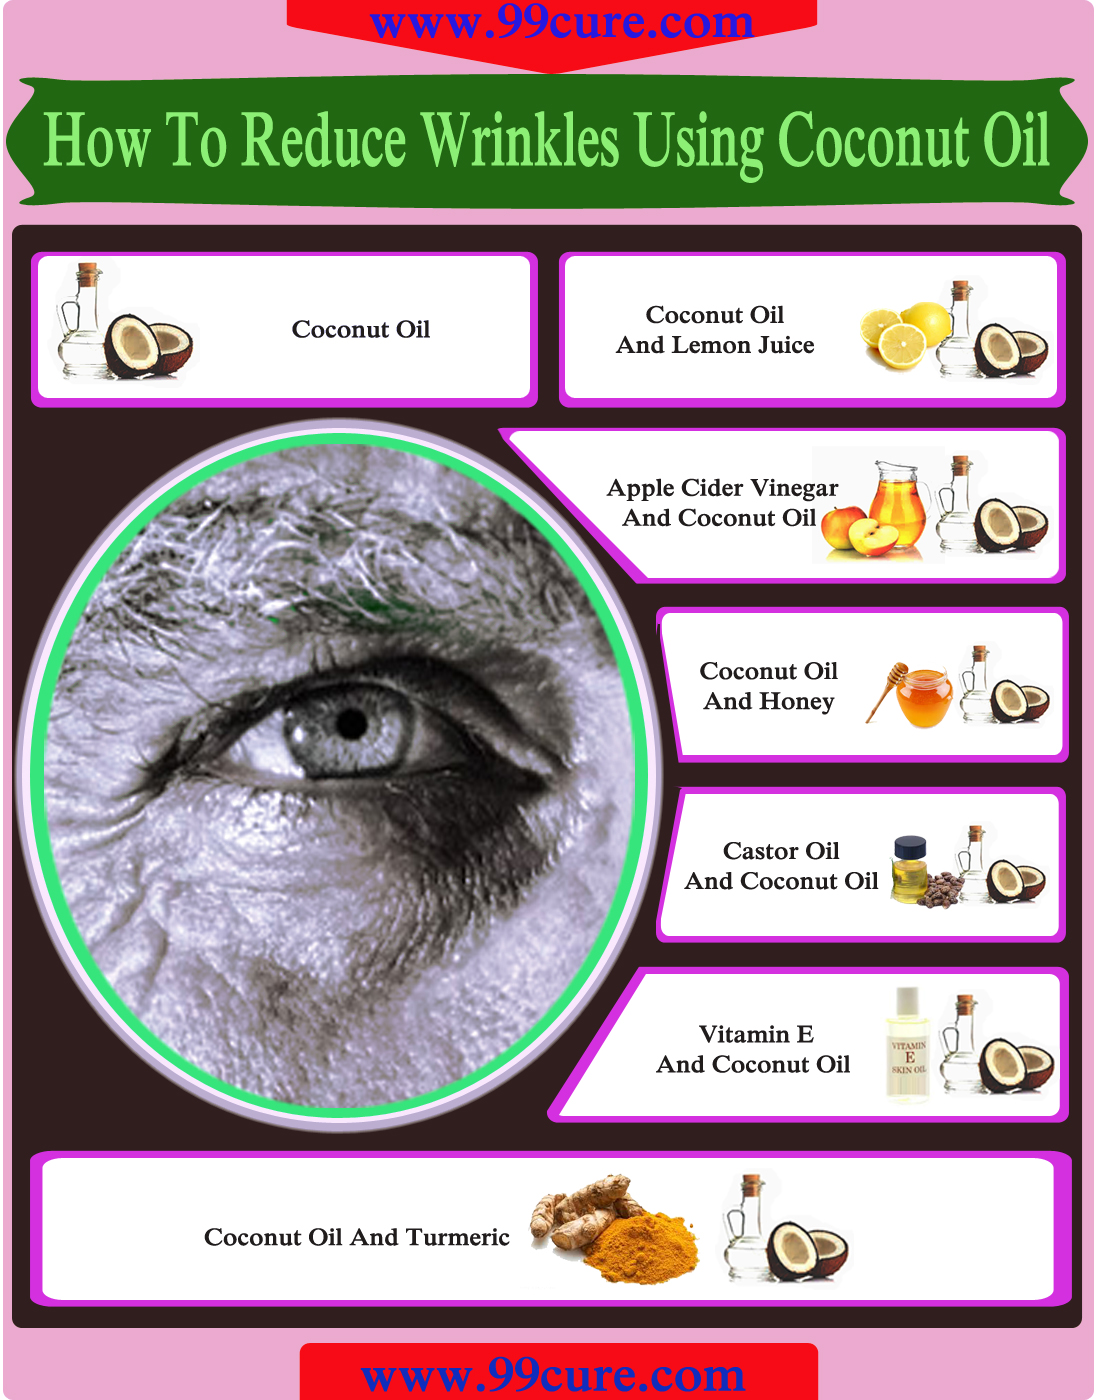 How To Reduce Wrinkles Using Coconut Oil